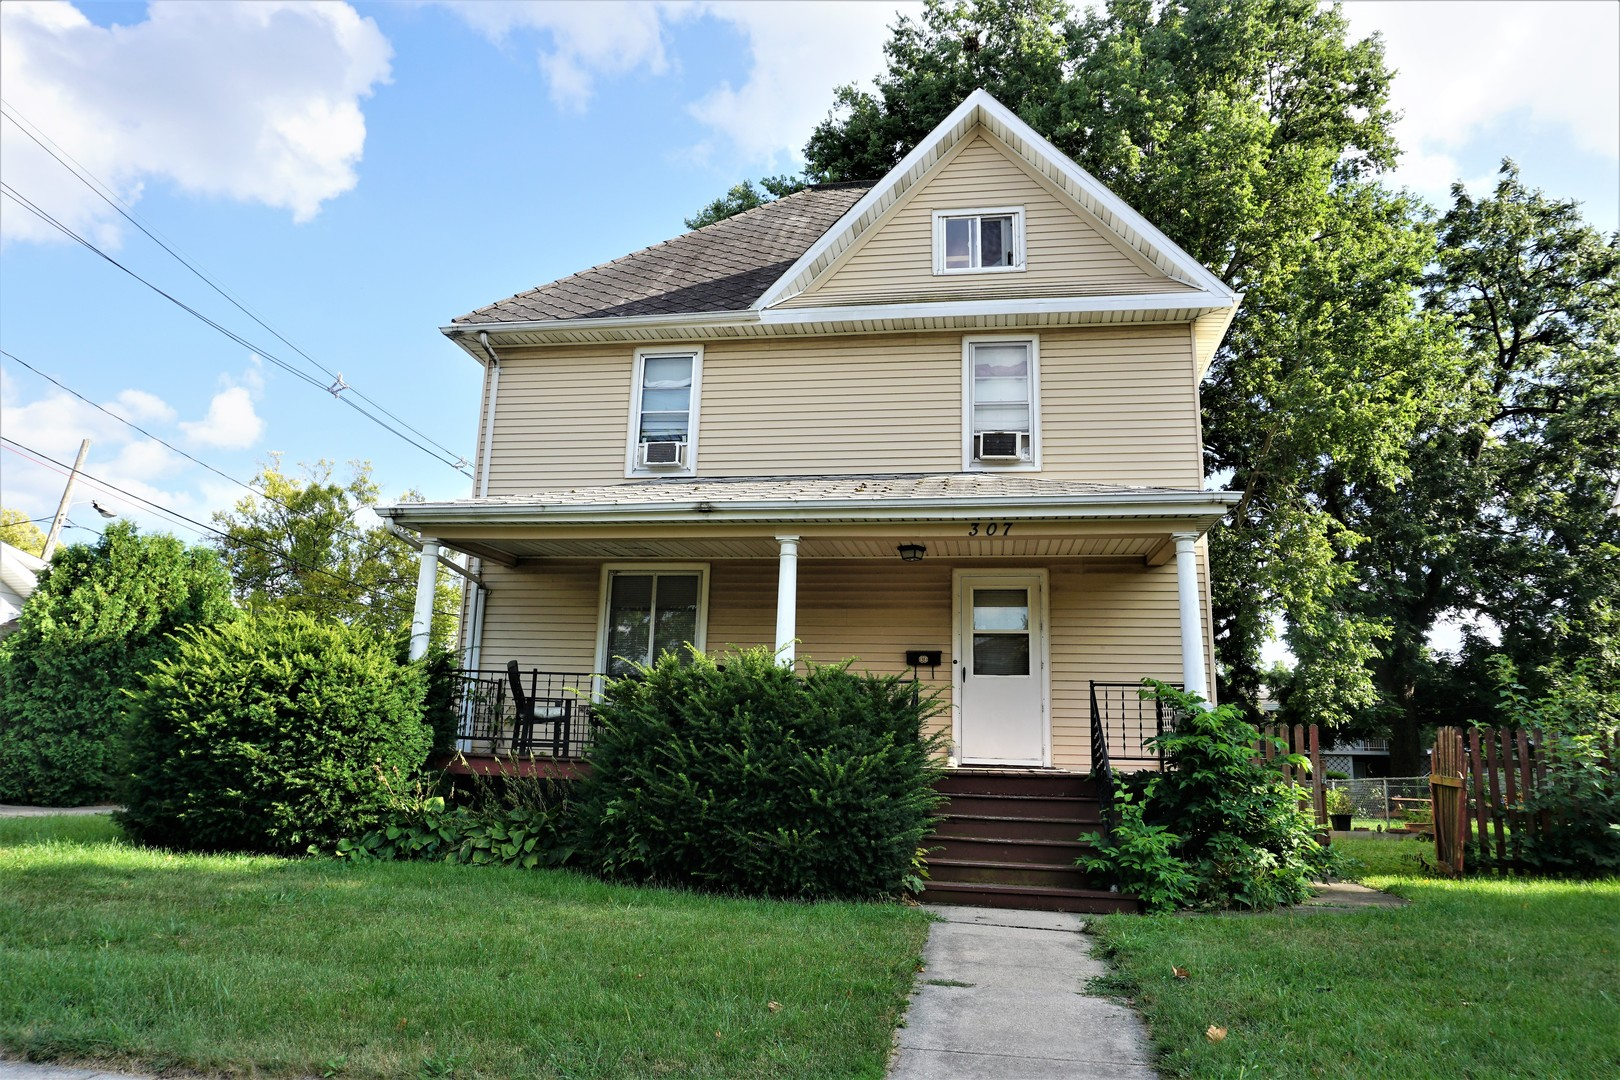 307 West White Street, Champaign in Champaign County, IL 61820 Home for Sale